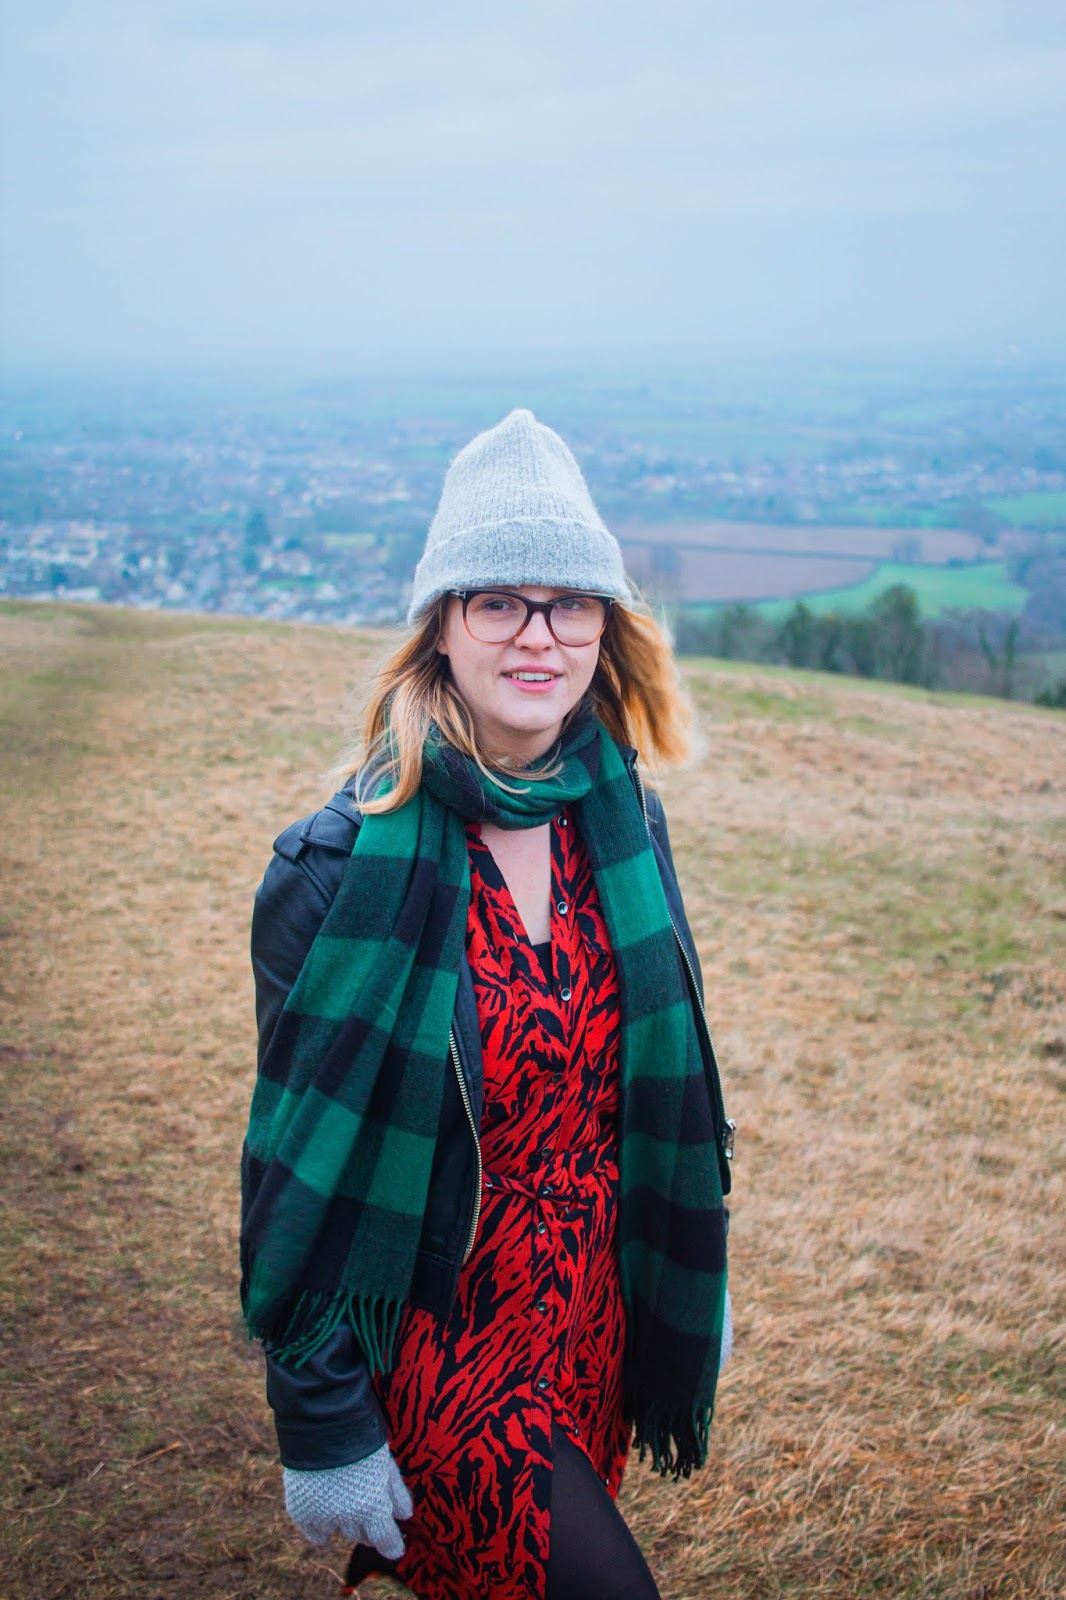 chloe harriets on walk in nature, scenic view, wearing mint velvet dress, whistle leatther jacket and beanie. 2020 bucket list